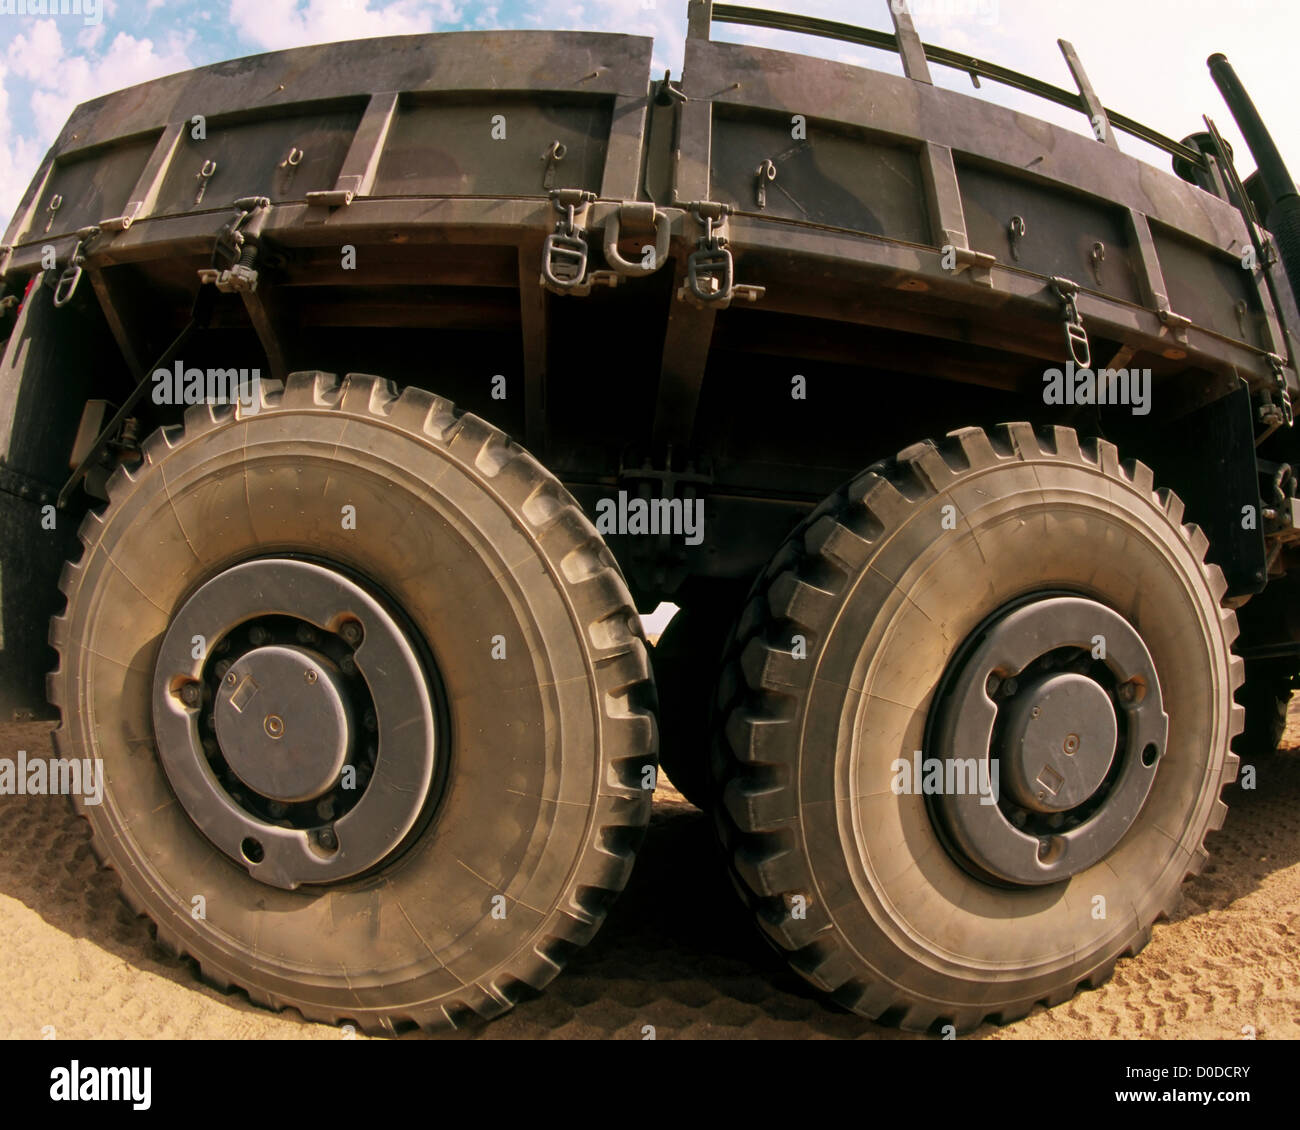 Fisheye View of a US Marine Corps Troop Carrier - Stock Image